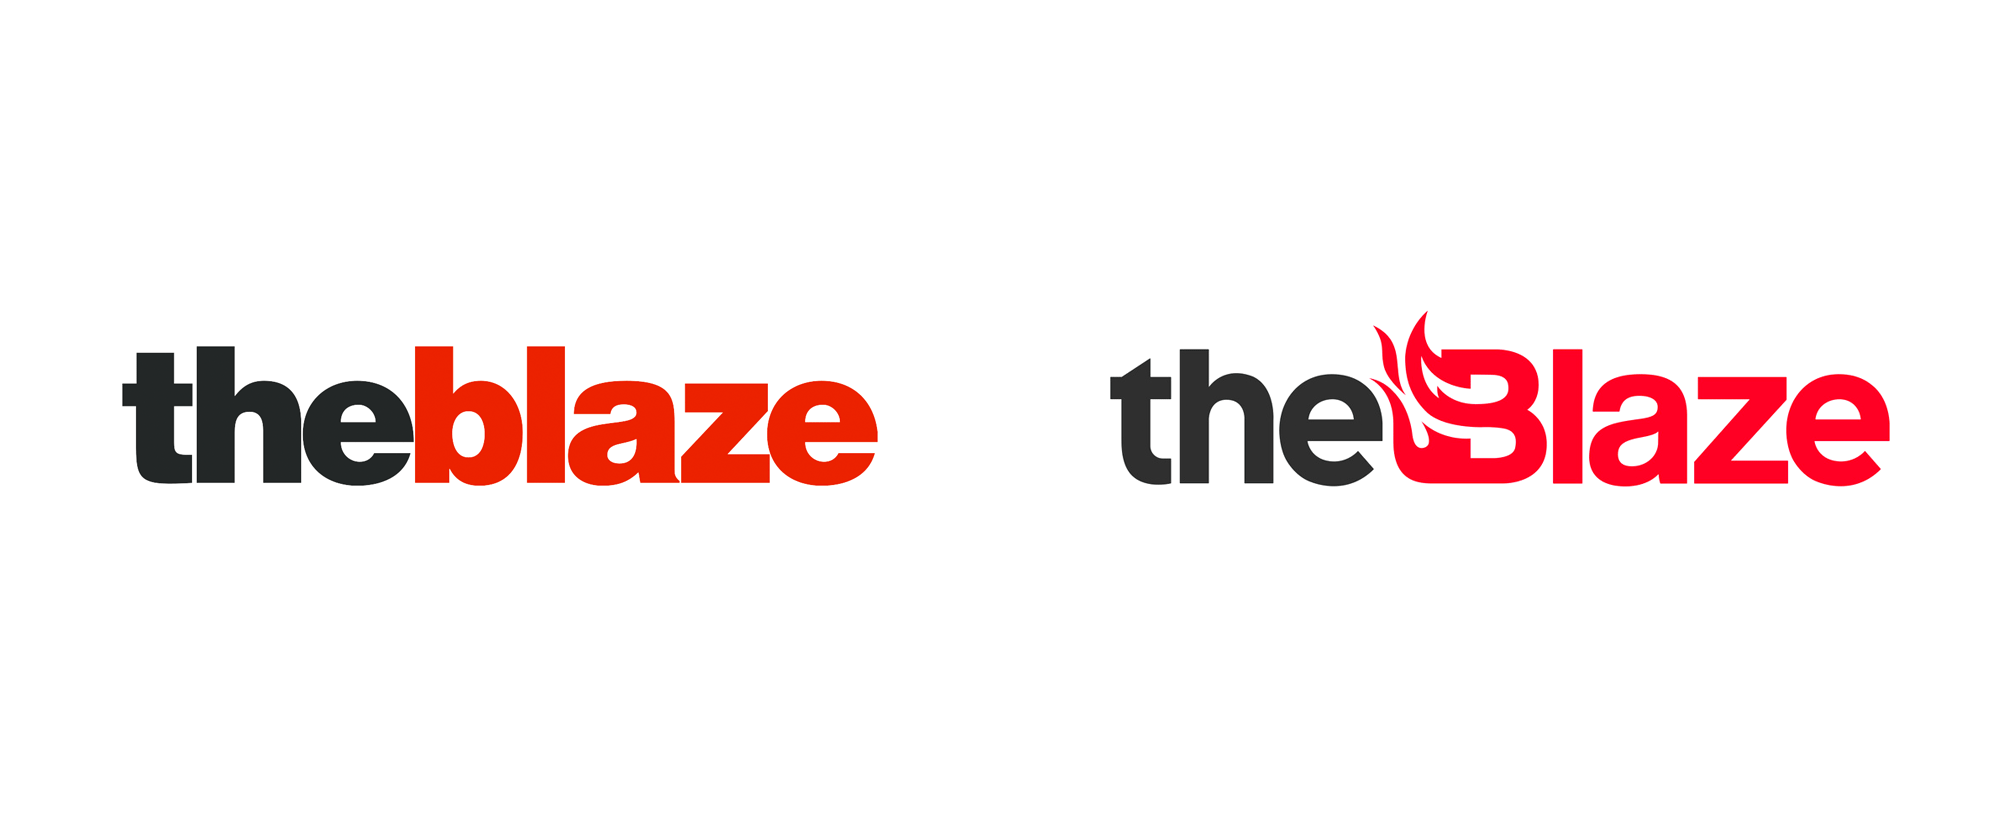 New Logos and Identity for The Blaze and Blaze Media done In-house